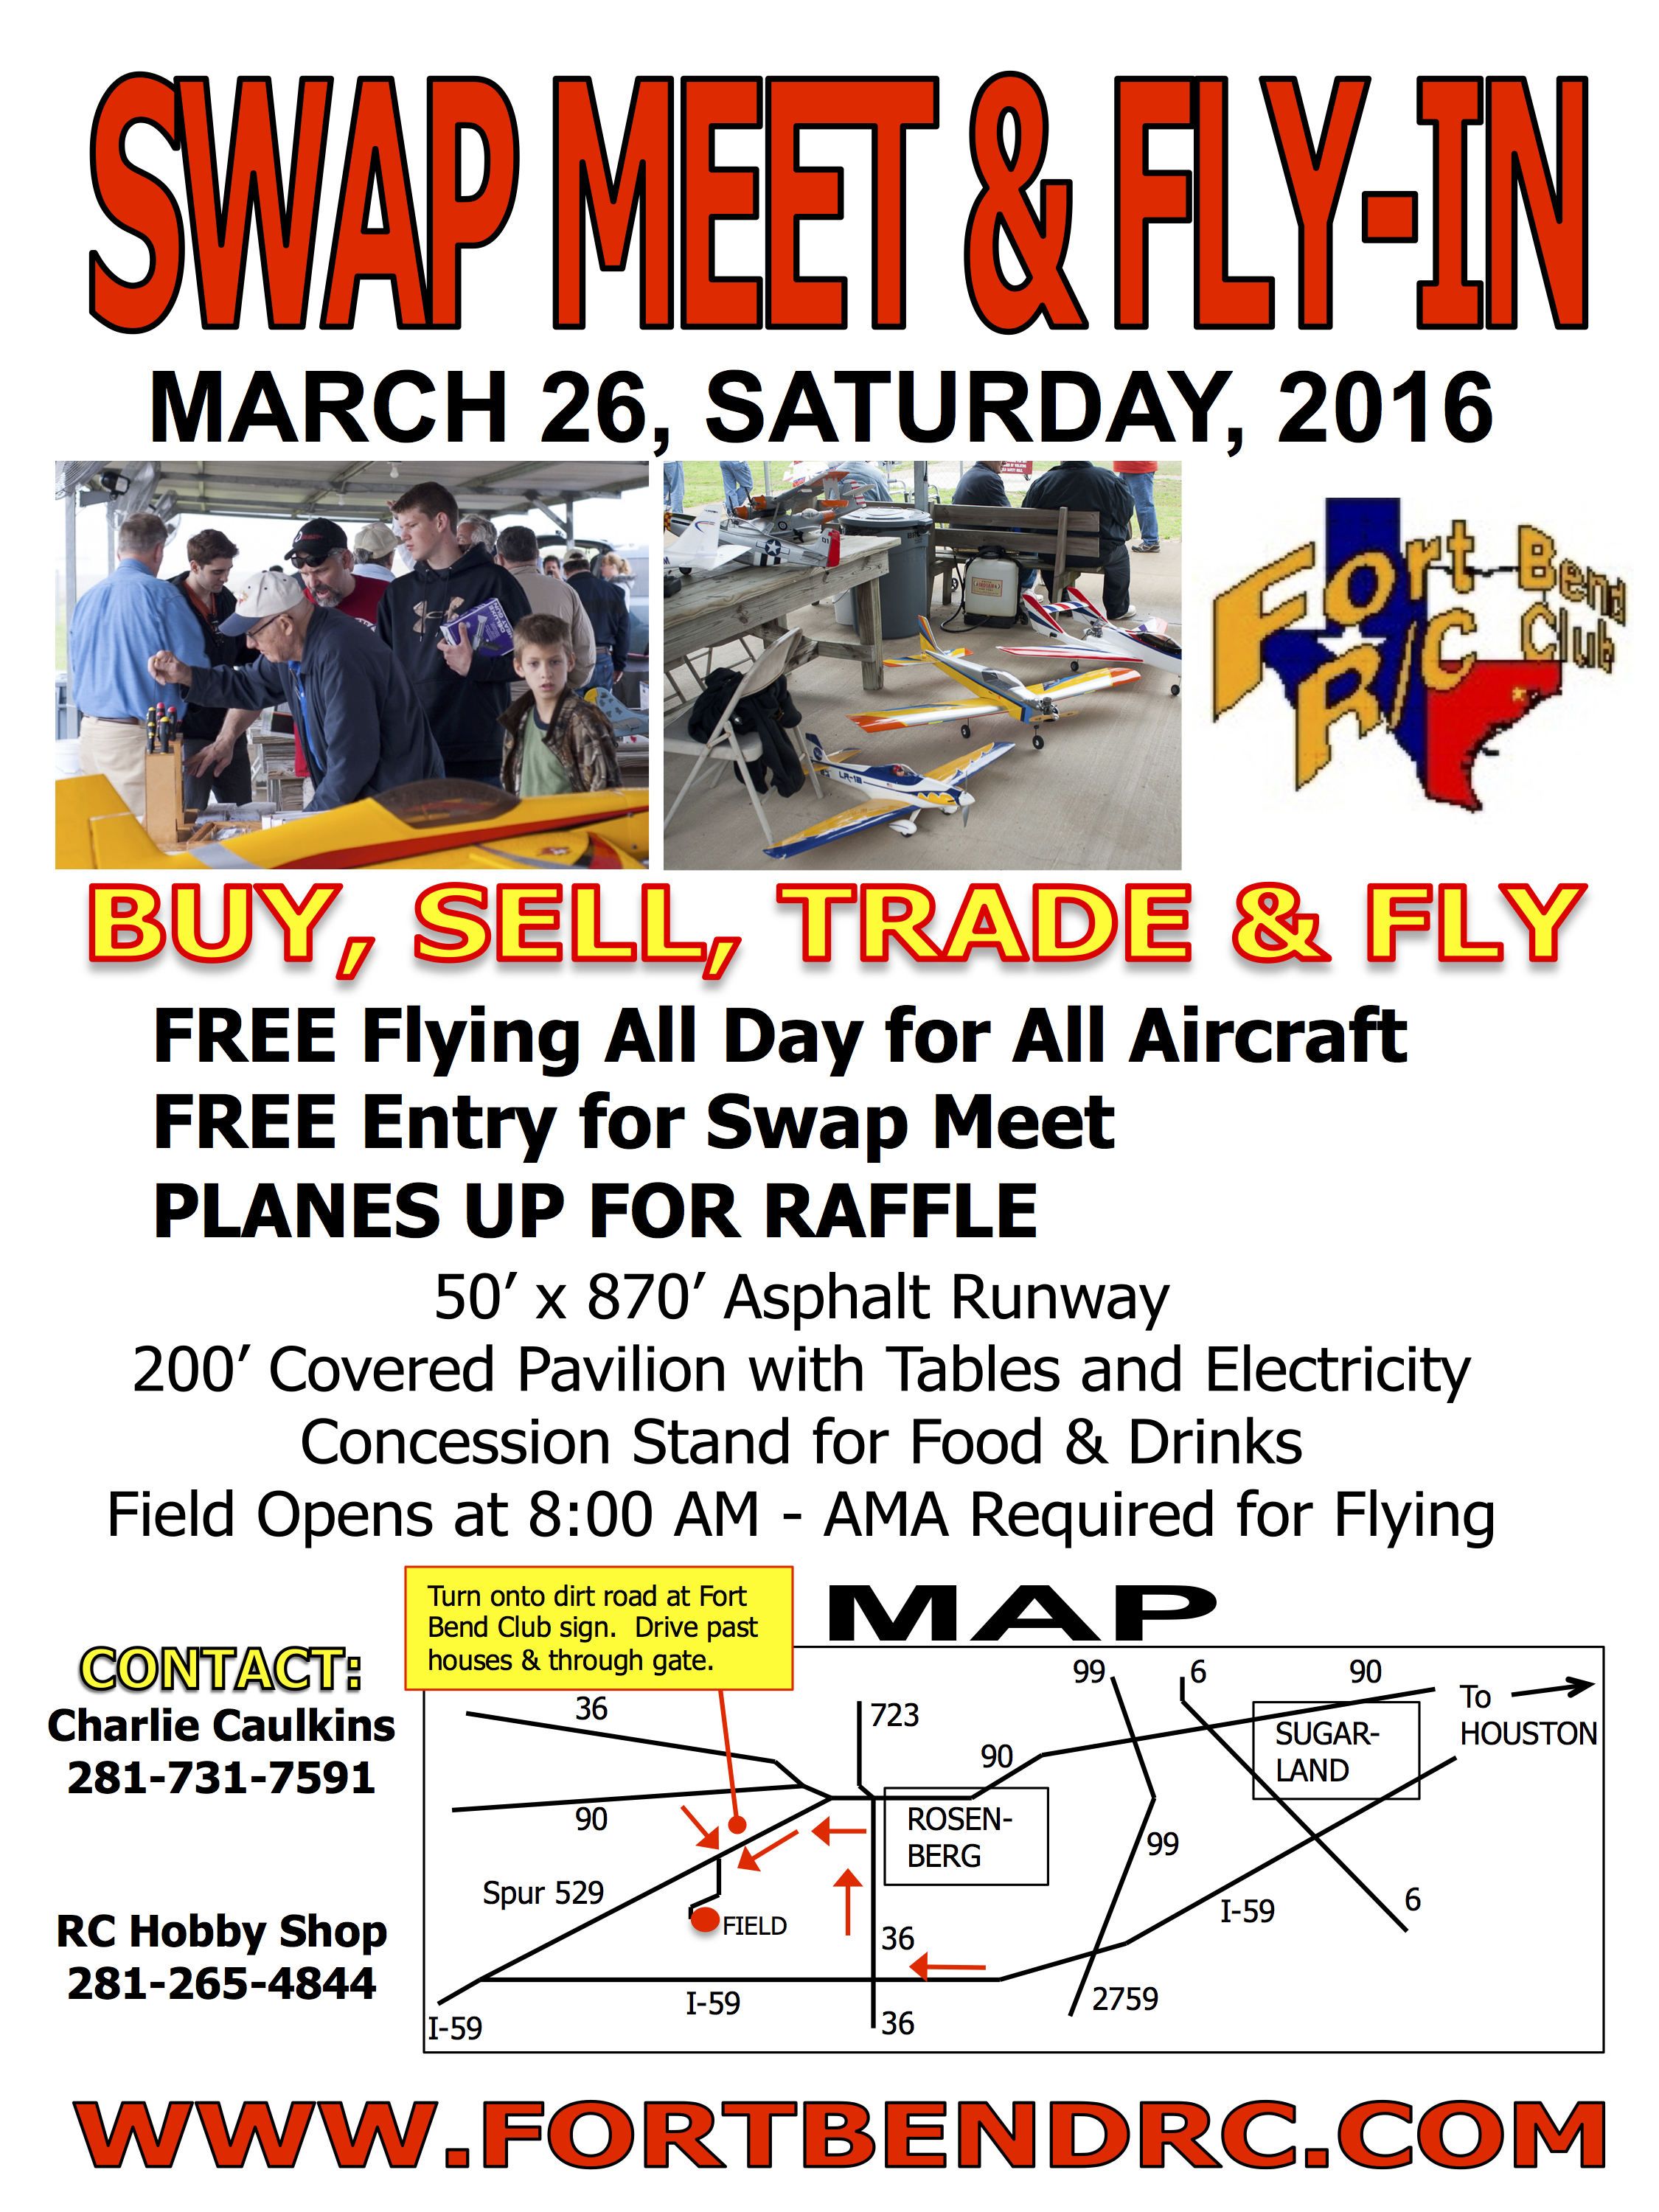 Swap Meet & Fly-In Flyer, 2016-03